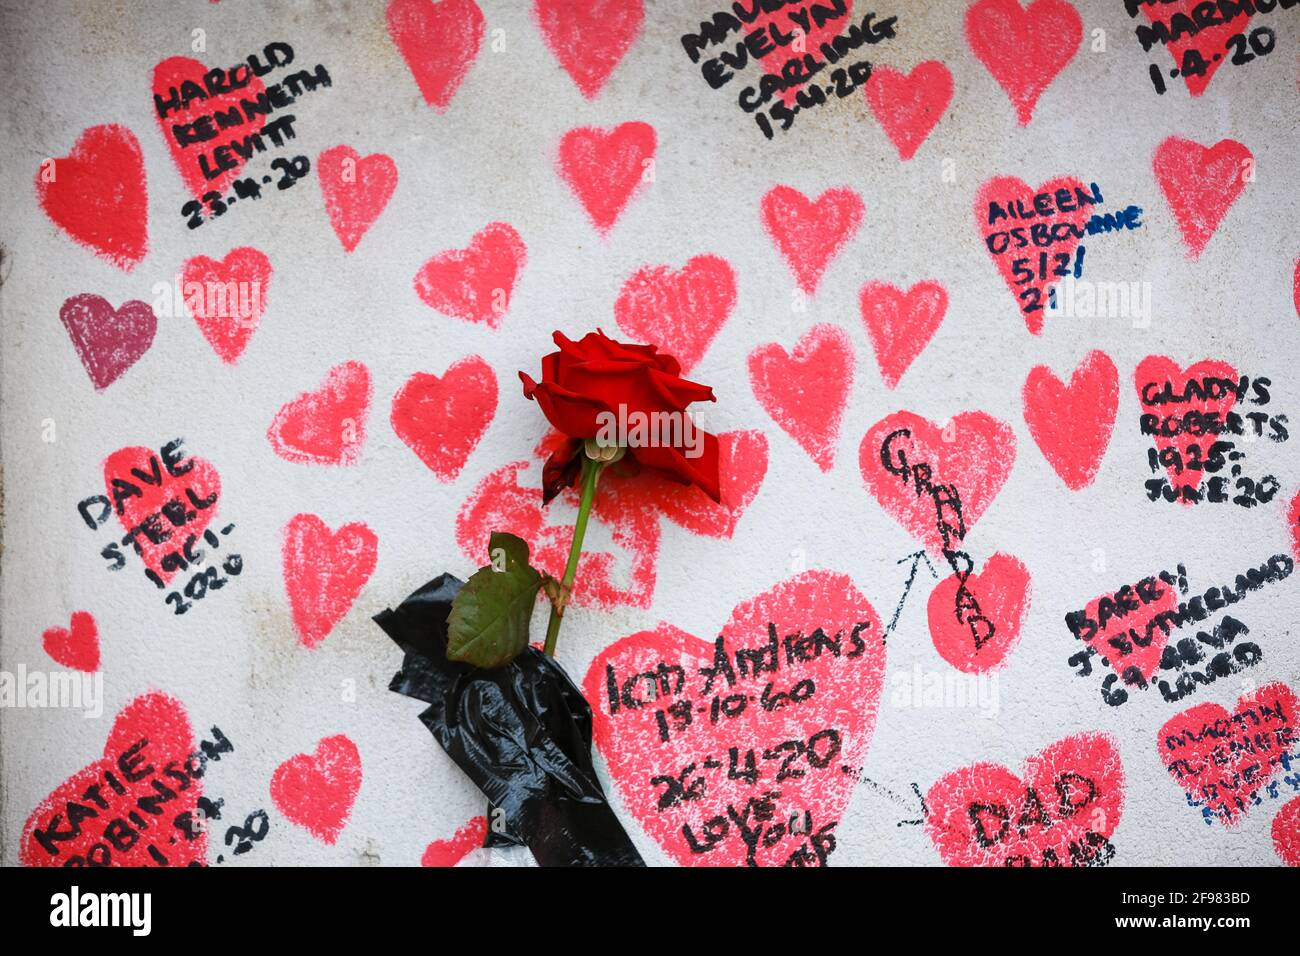 London, UK. 13 April 2021. The National COVID Memorial Wall - hand drawn red hearts on a wall opposite Houses of Parliament. Credit: Waldemar Sikora Stock Photo